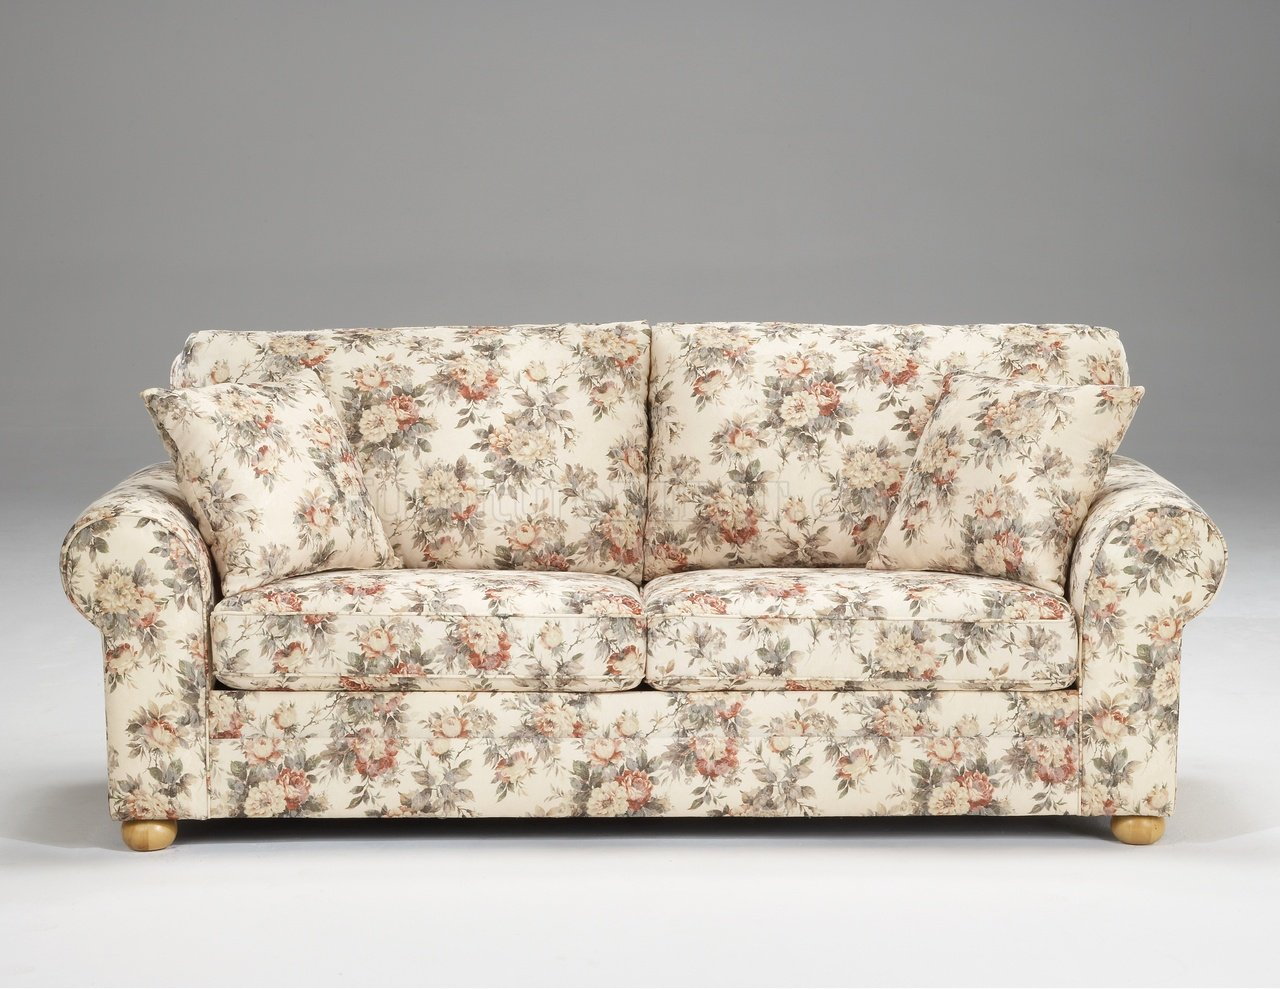 New Flowered Sofas 70 About Remodel Sofa Table Ideas with Flowered Sofas